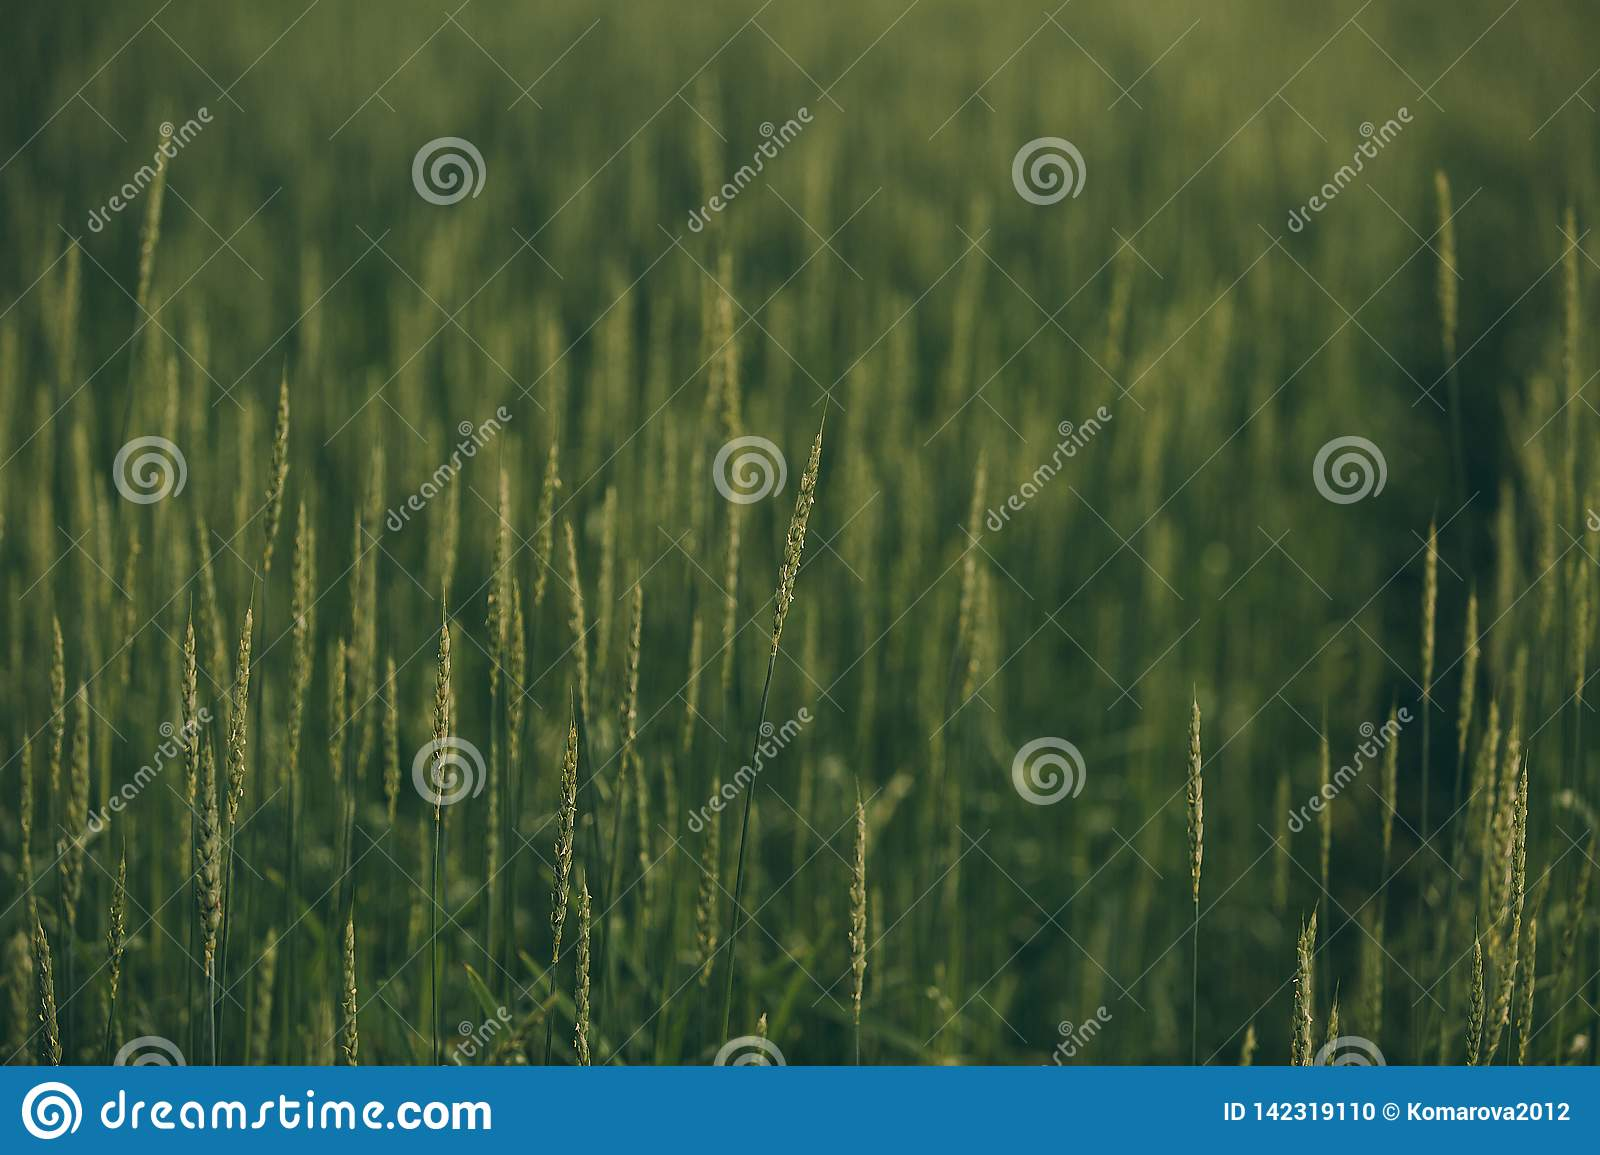 Spikes in a green field